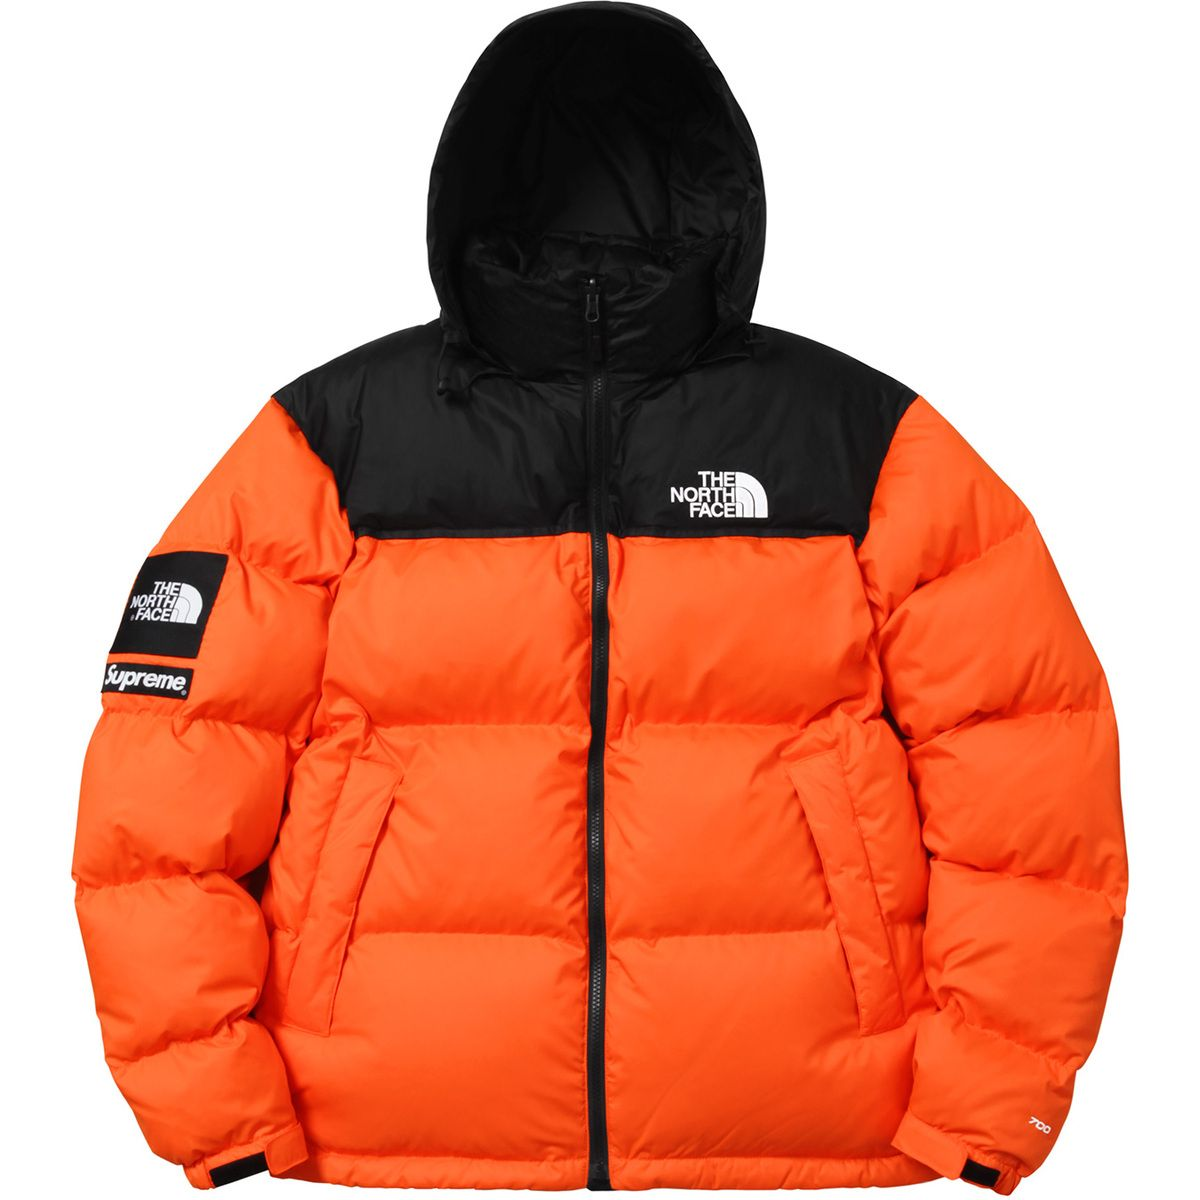 1688bd680142 Supreme Orange North Face Jacket